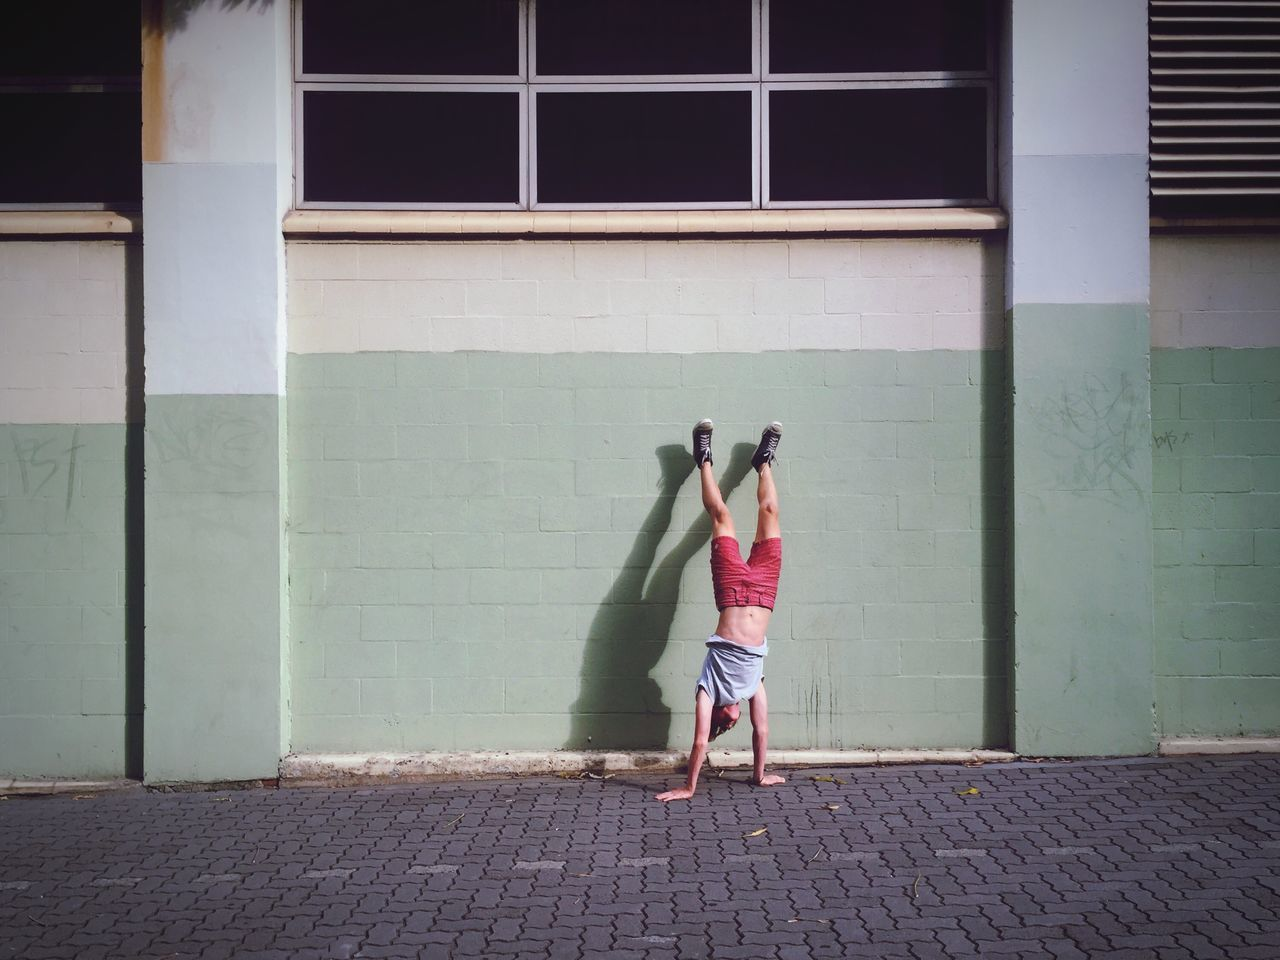 Man doing handstand on footpath against building